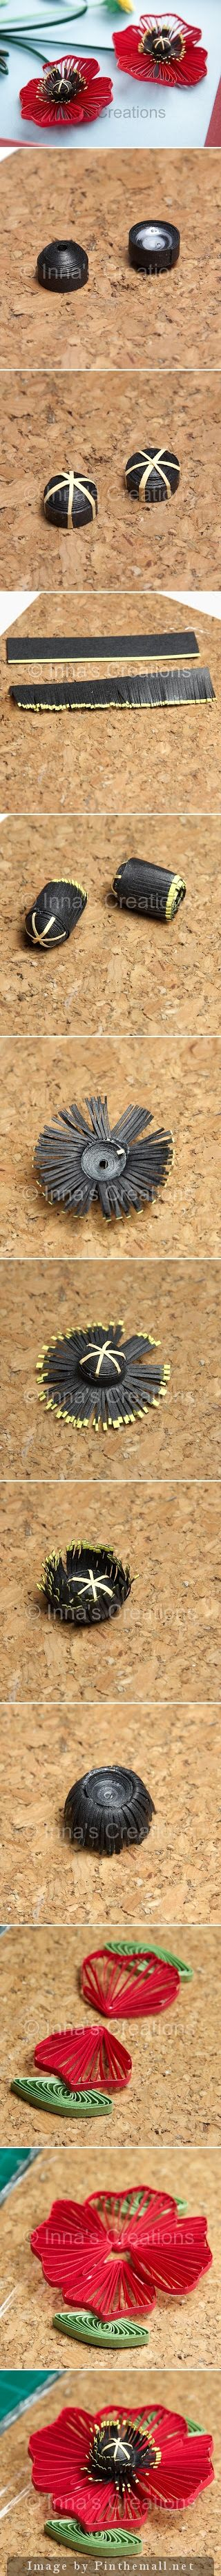 Quilled poppies step-by-step, part 2